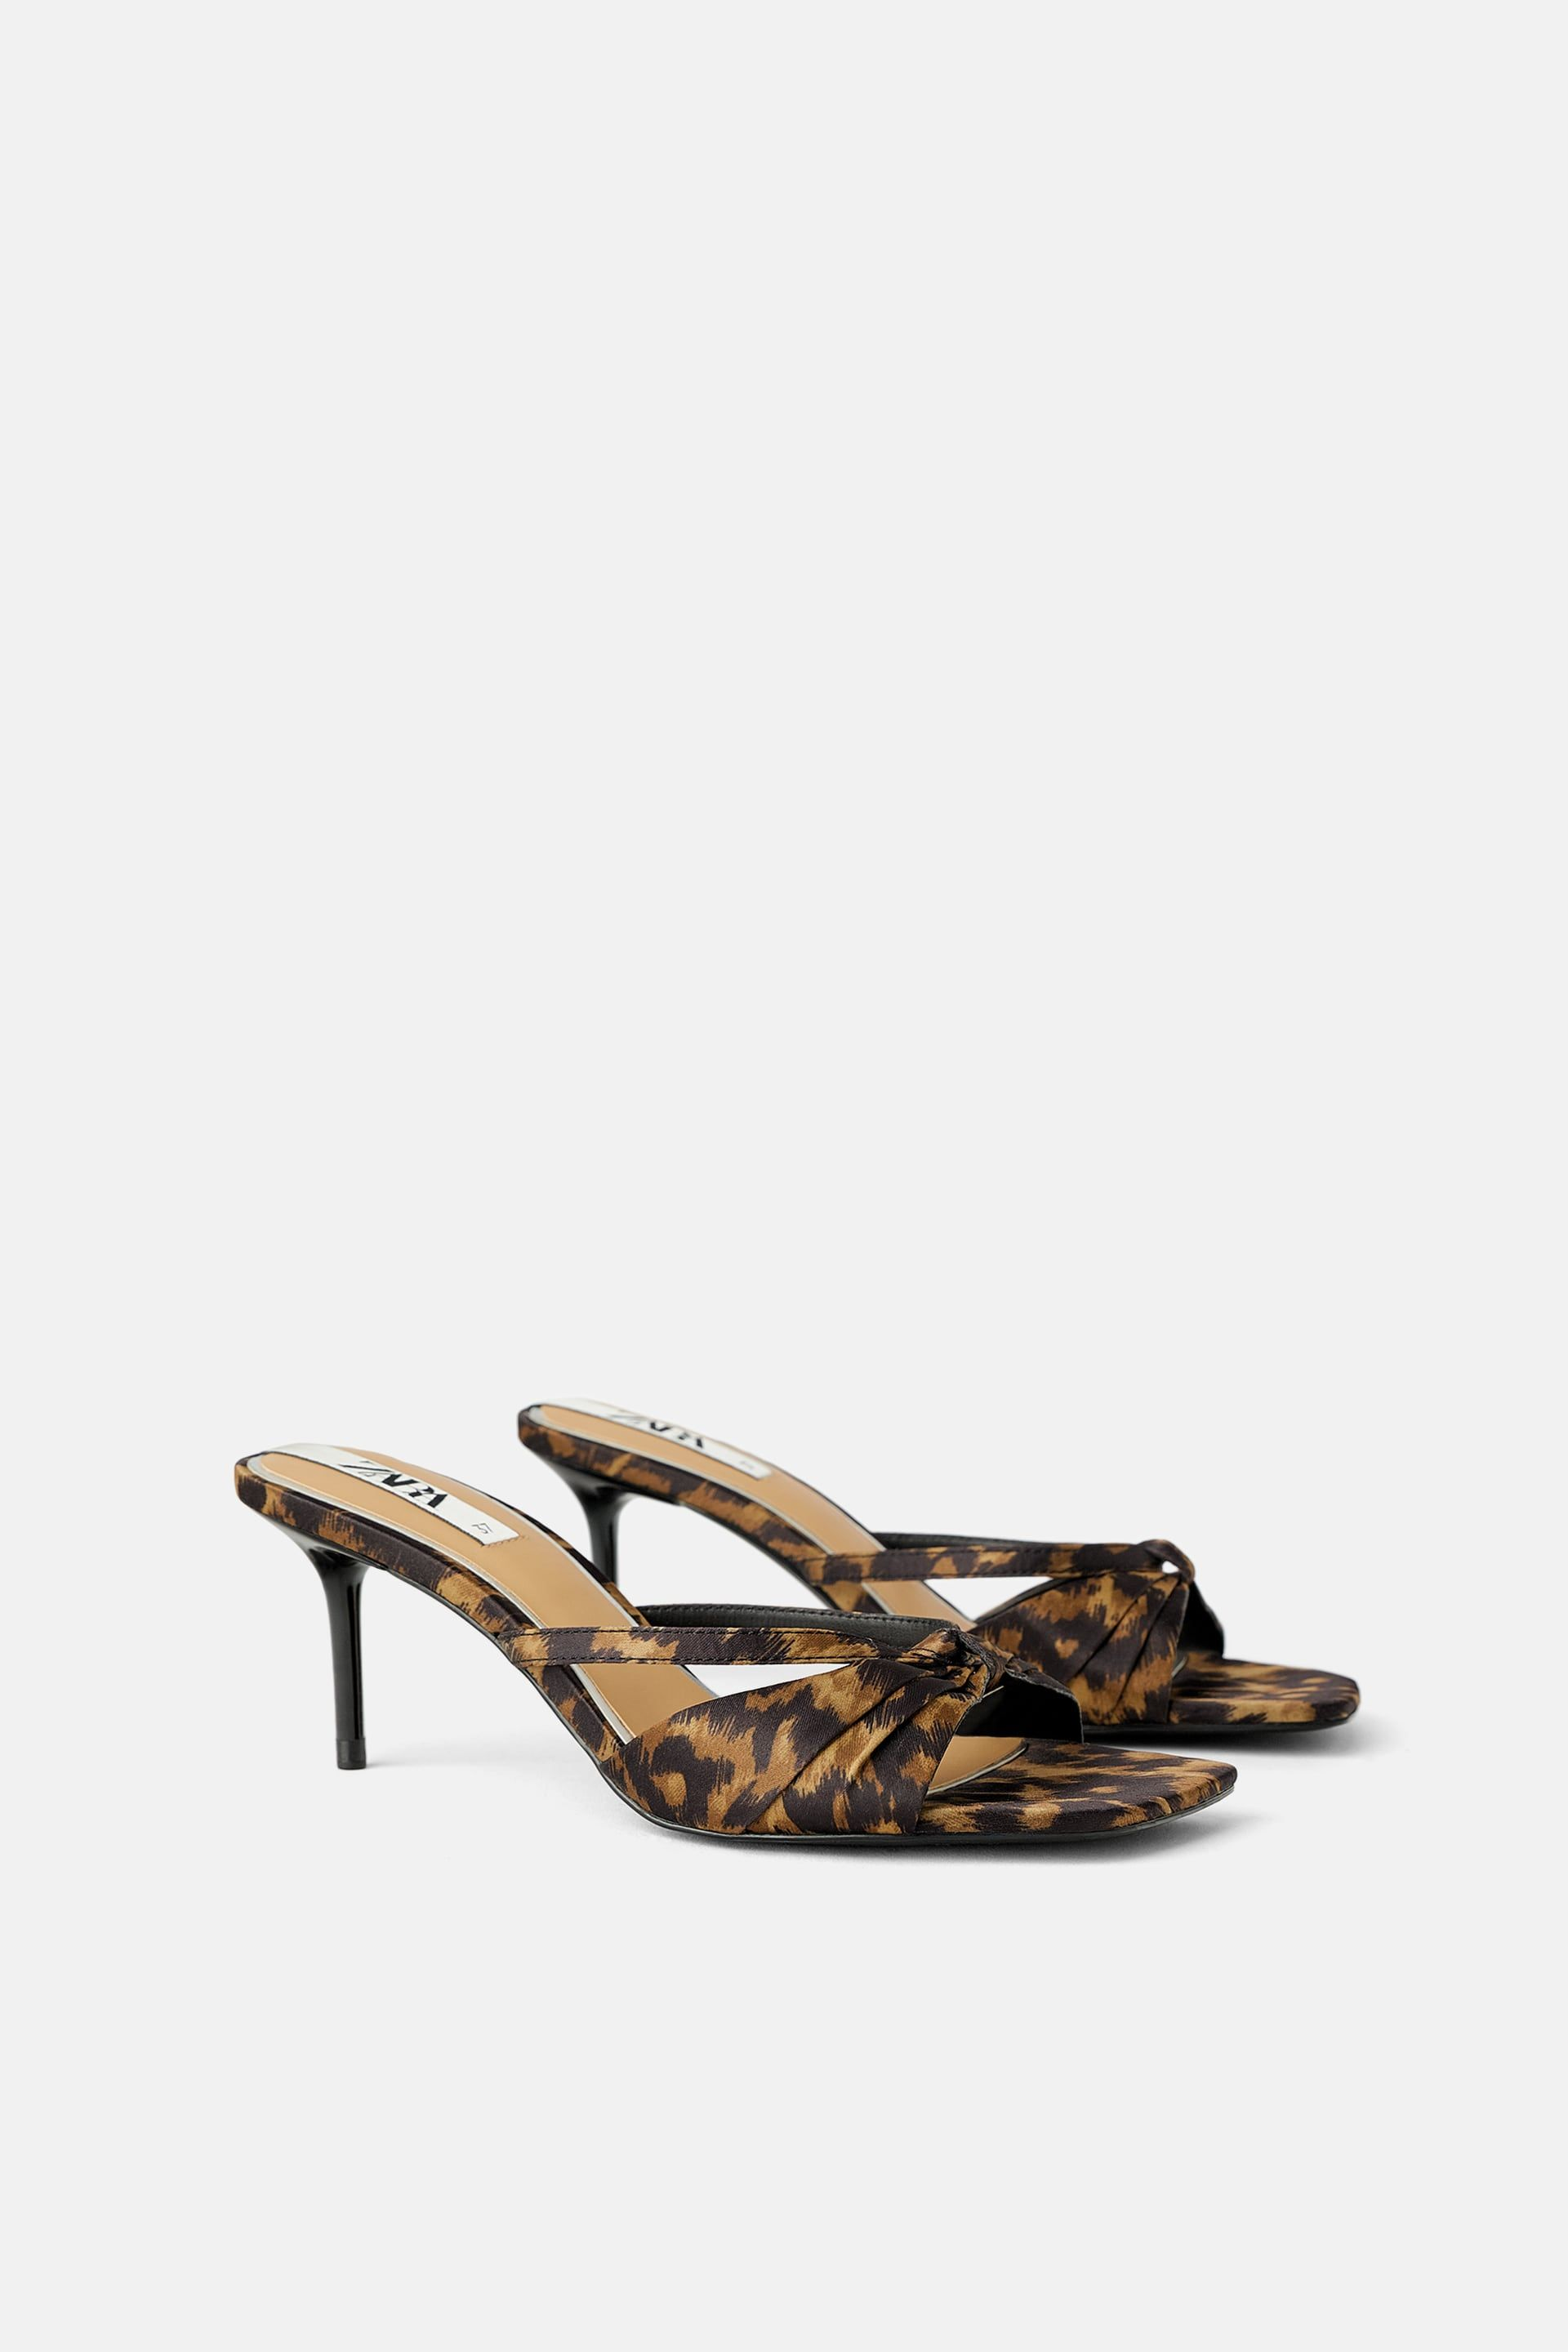 2acdb9b12bd Animal print mid-height heeled sandals in 2019 | Shop: S/S '19 ...